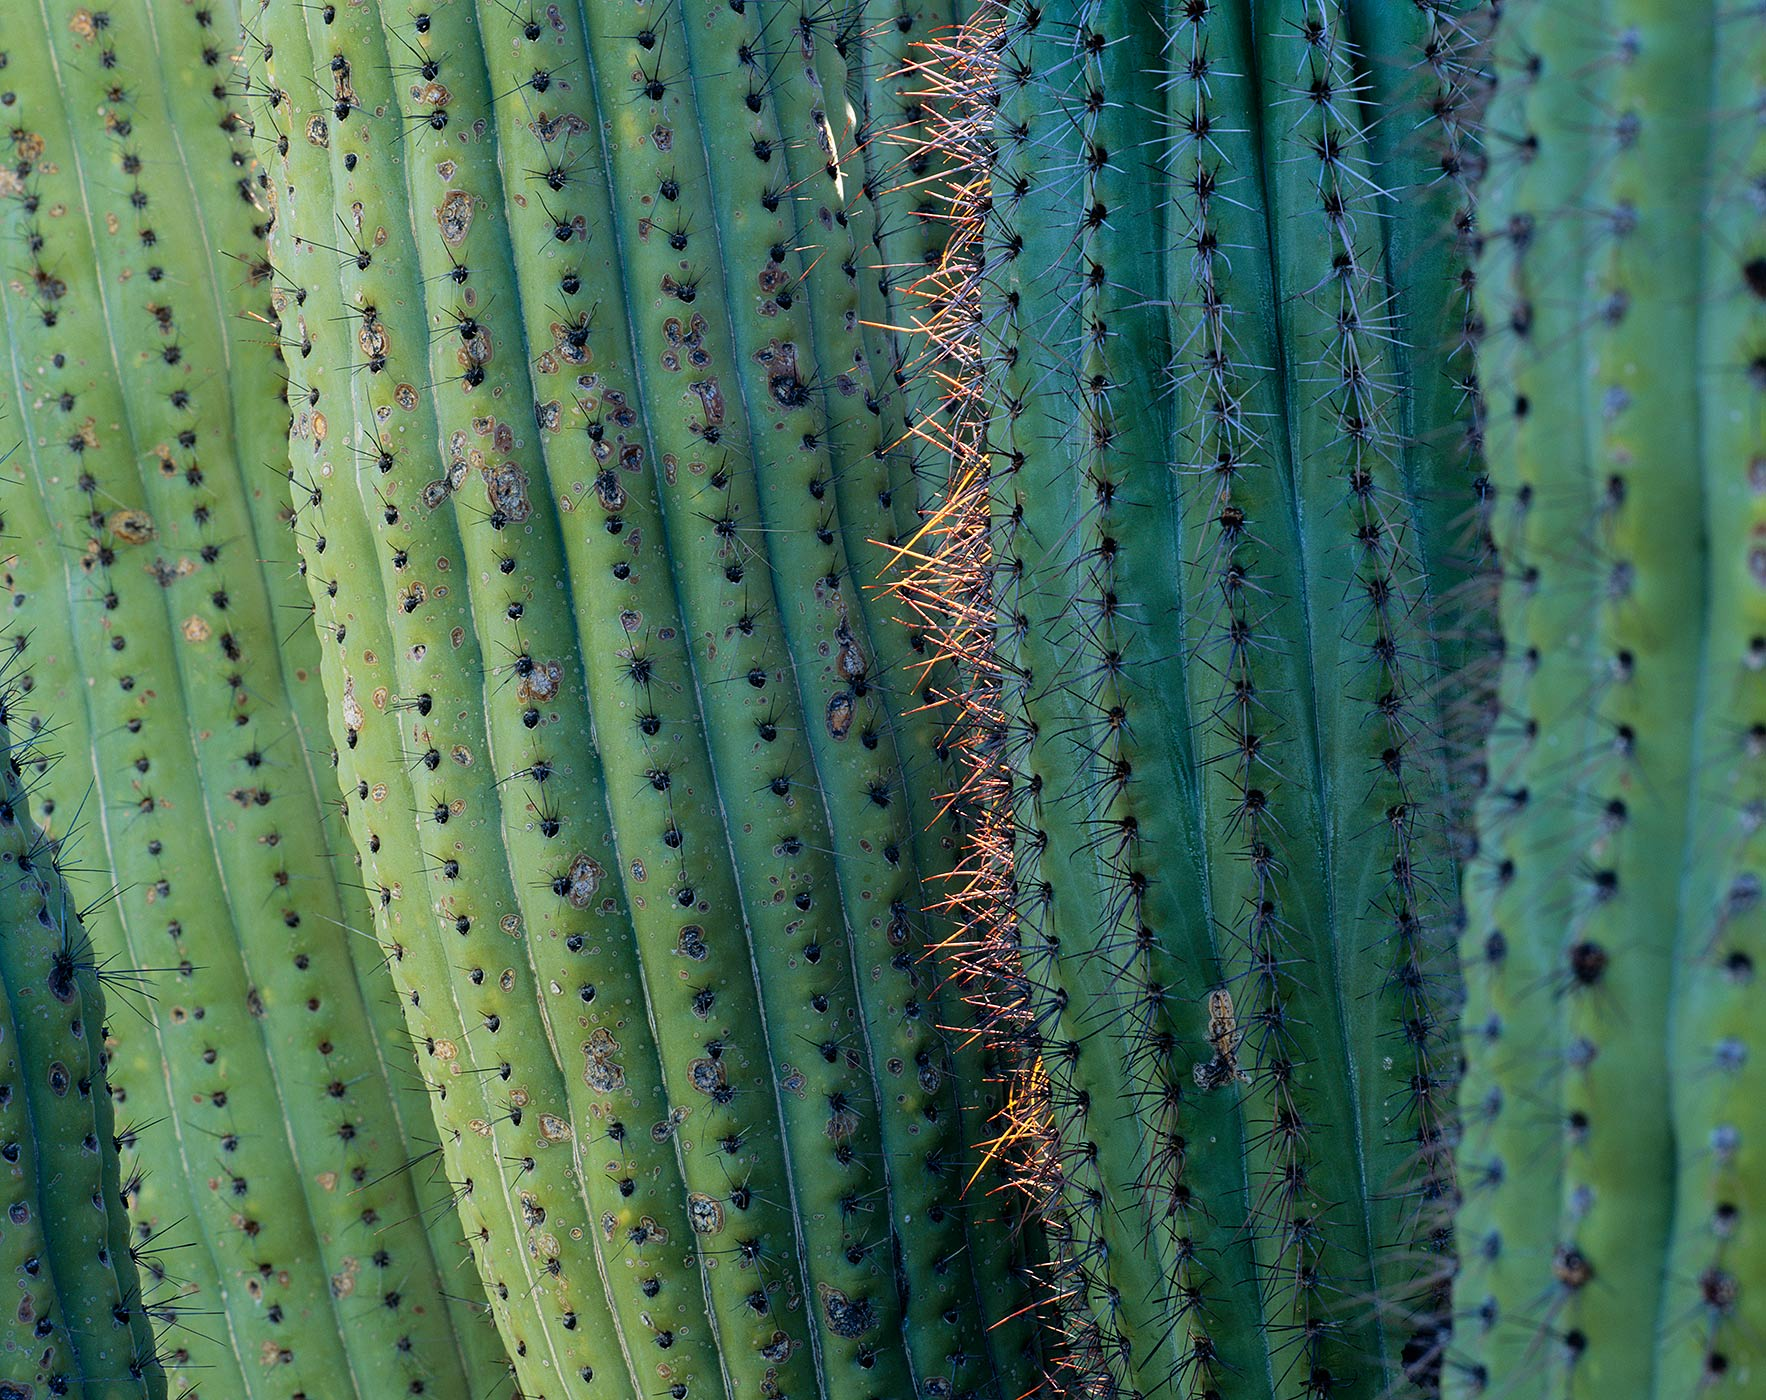 613 Cactus Detail, Organ Pipe Cactus National Monument, Arizona